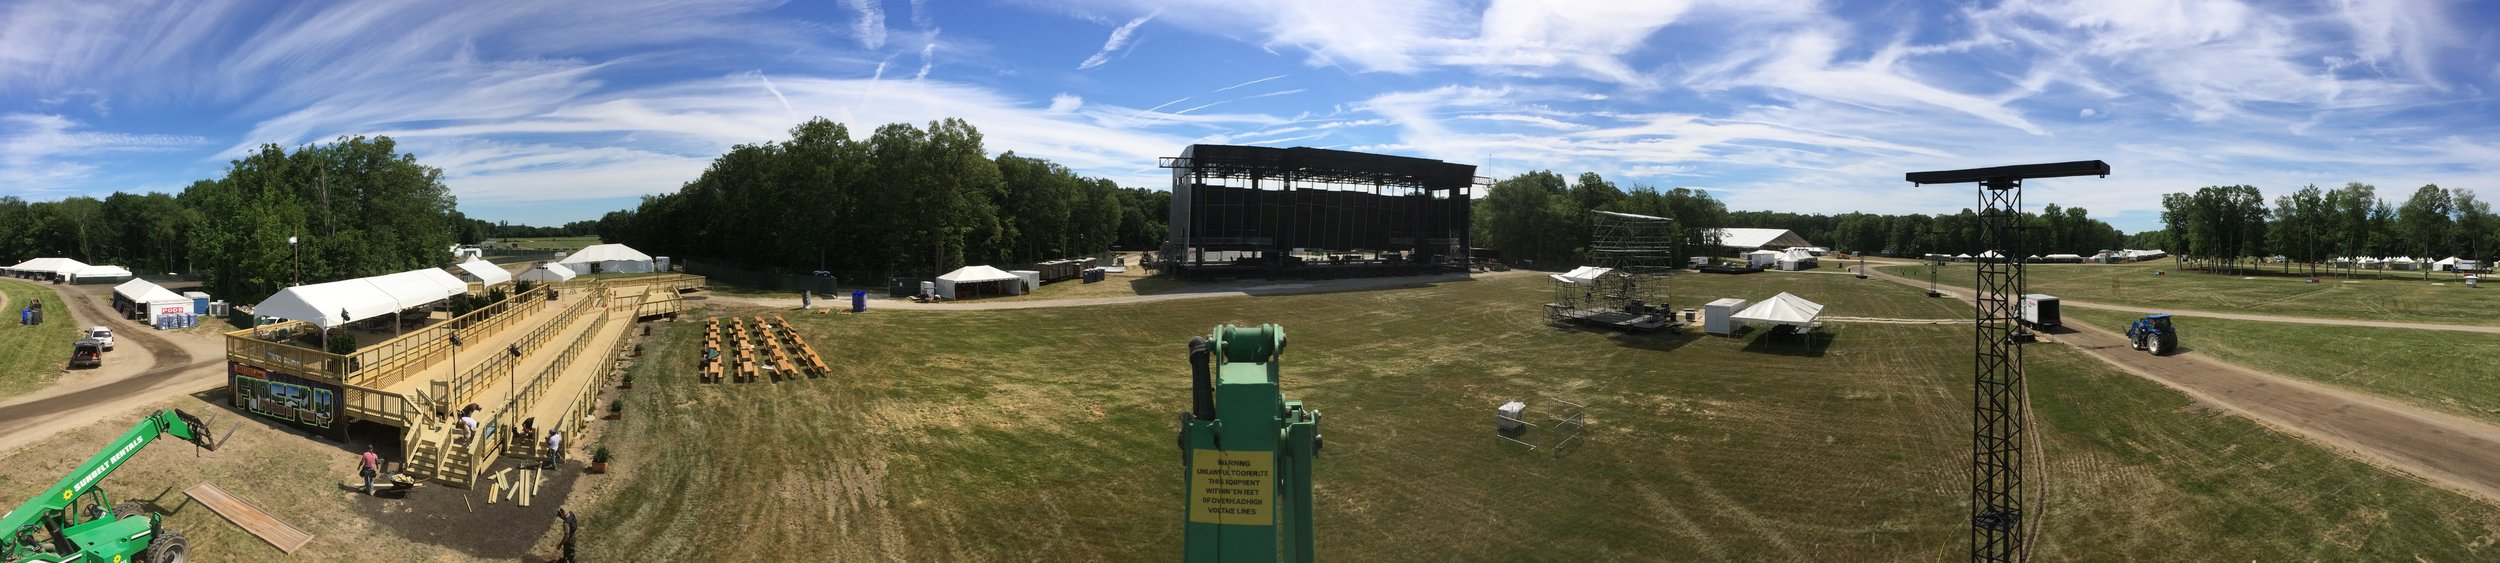 Firefly Music Festival - 2016 (first year of the loft)